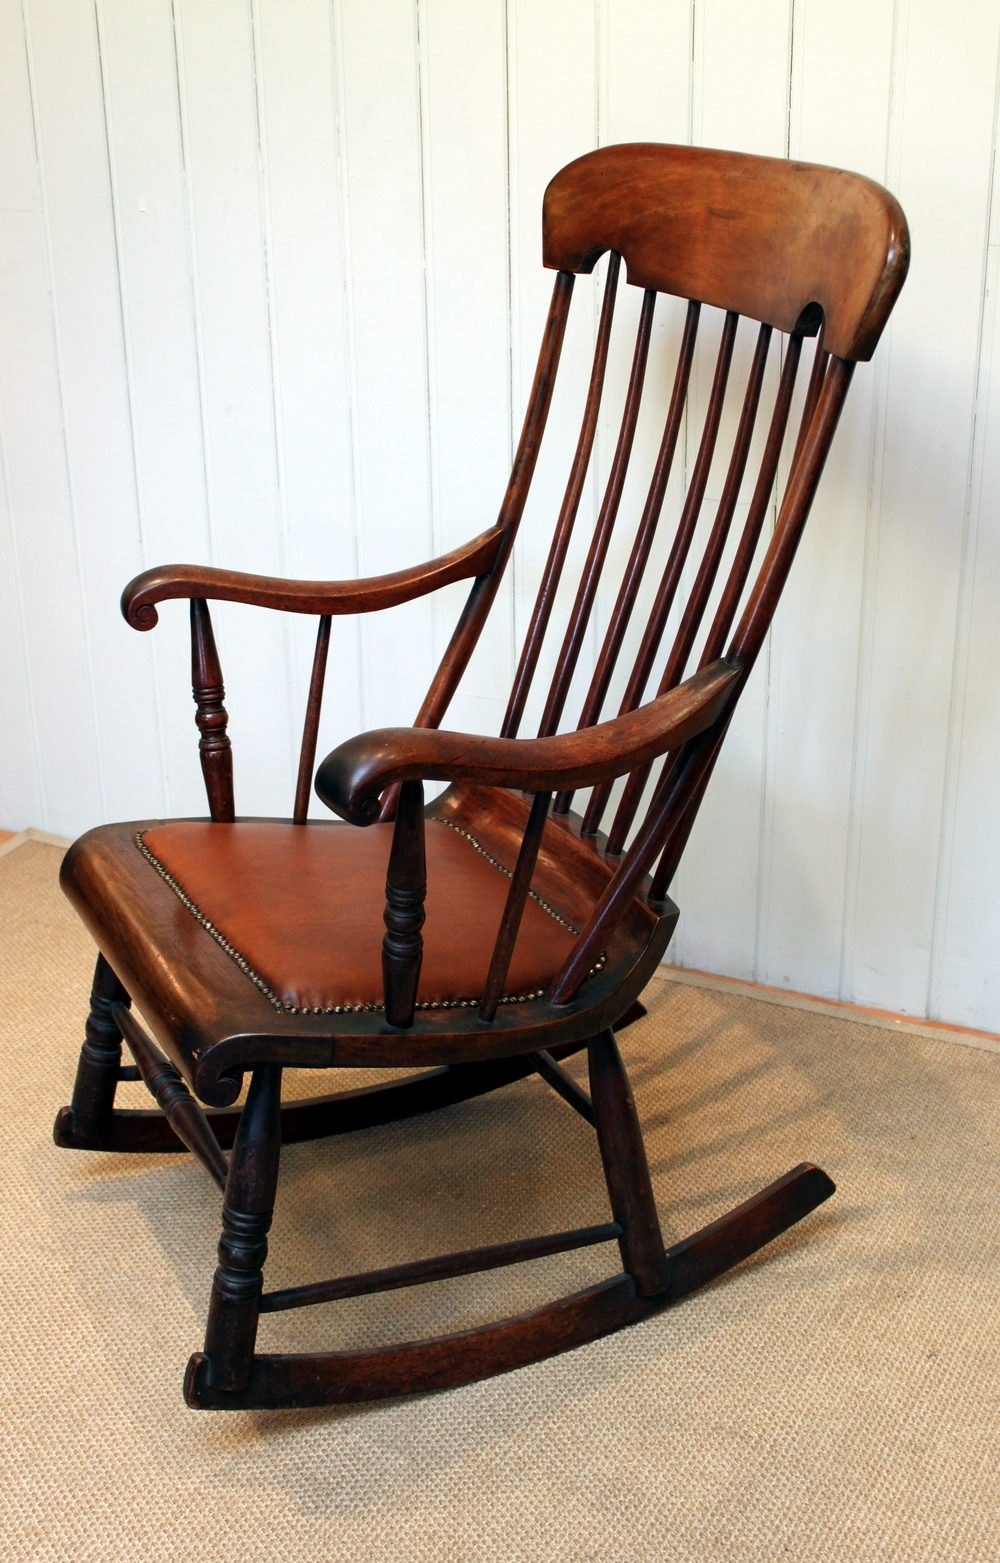 Victorian Fruitwood Rocking Chair – Antiques Atlas For 2017 Victorian Rocking Chairs (View 8 of 15)